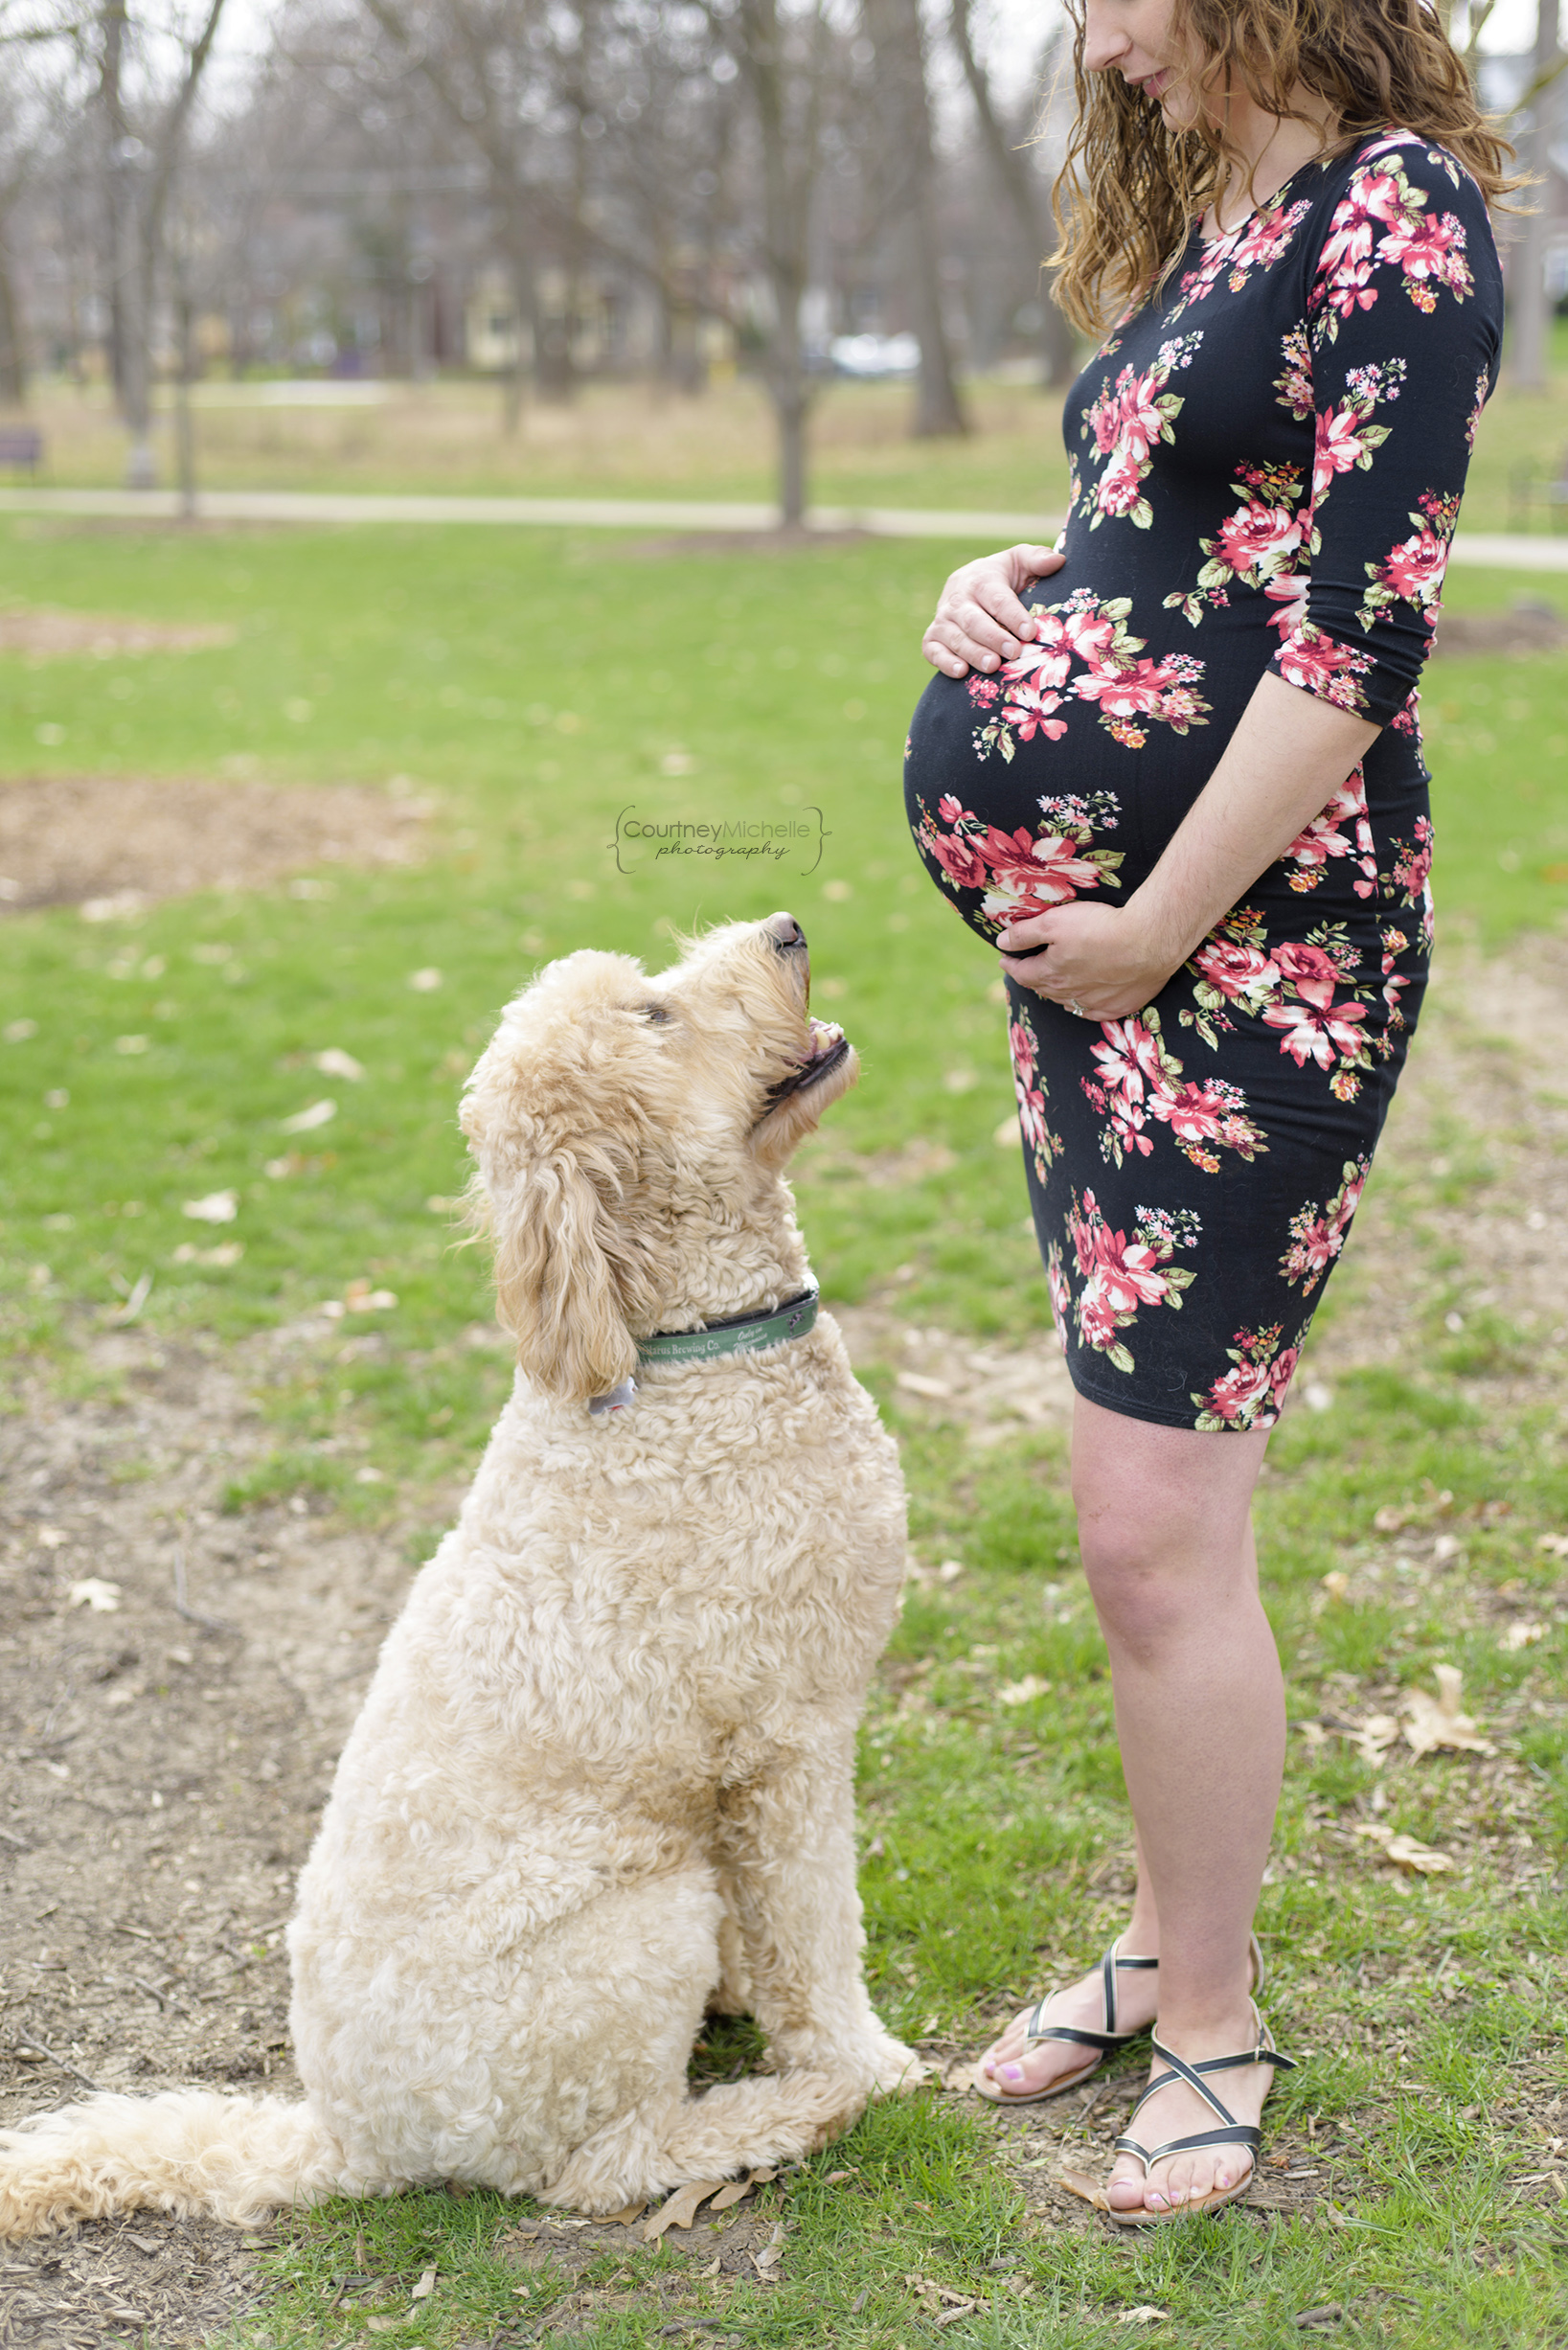 chicago-maternity-and-newborn-photographer-courtney-laper©CopyrightCMP-7227e.jpg